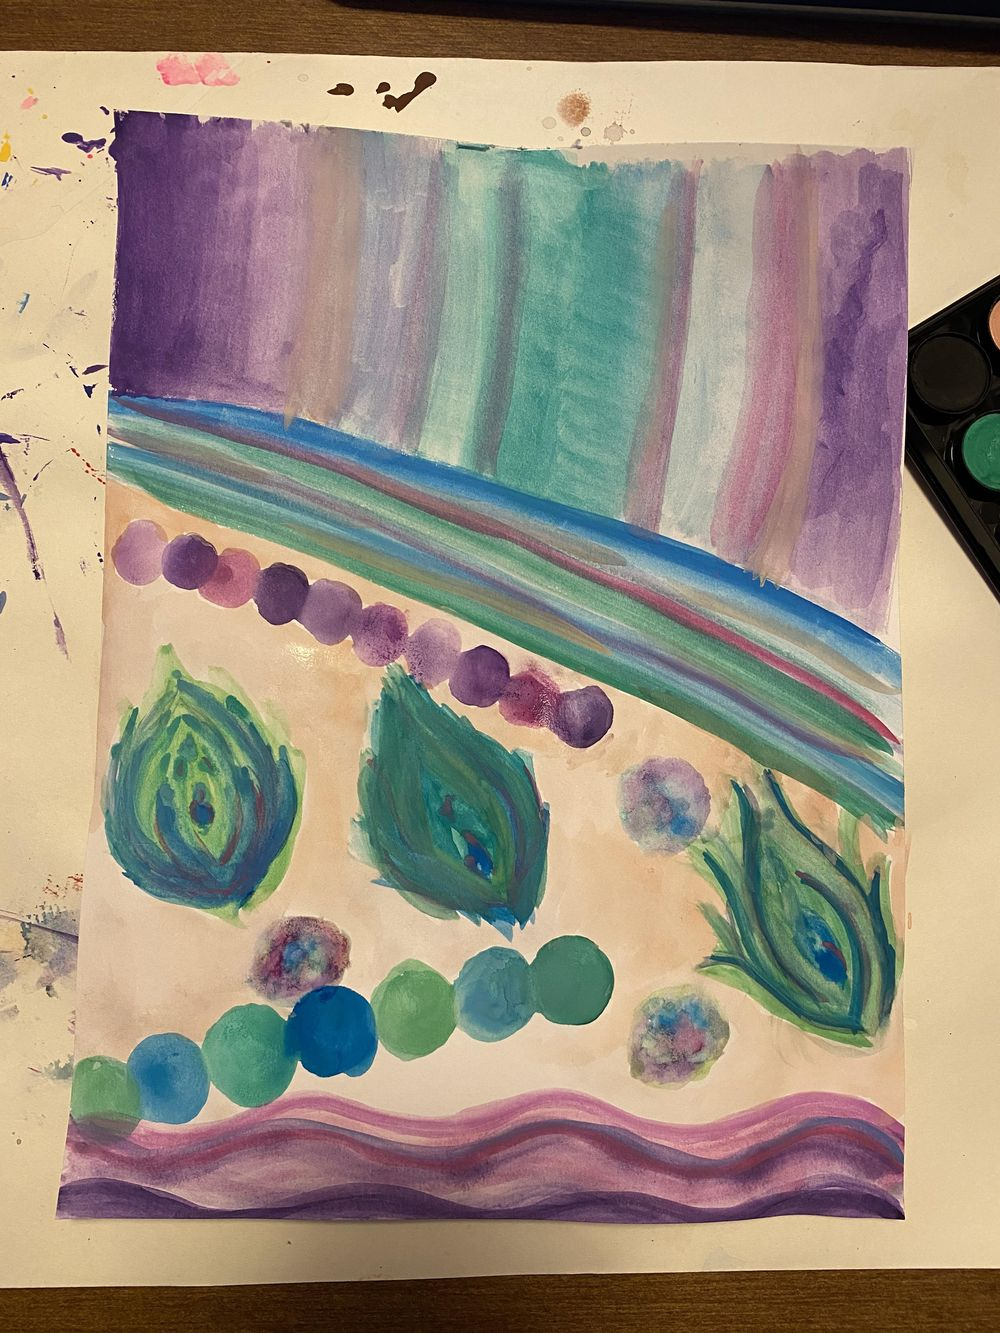 Mood painting - image 2 - student project